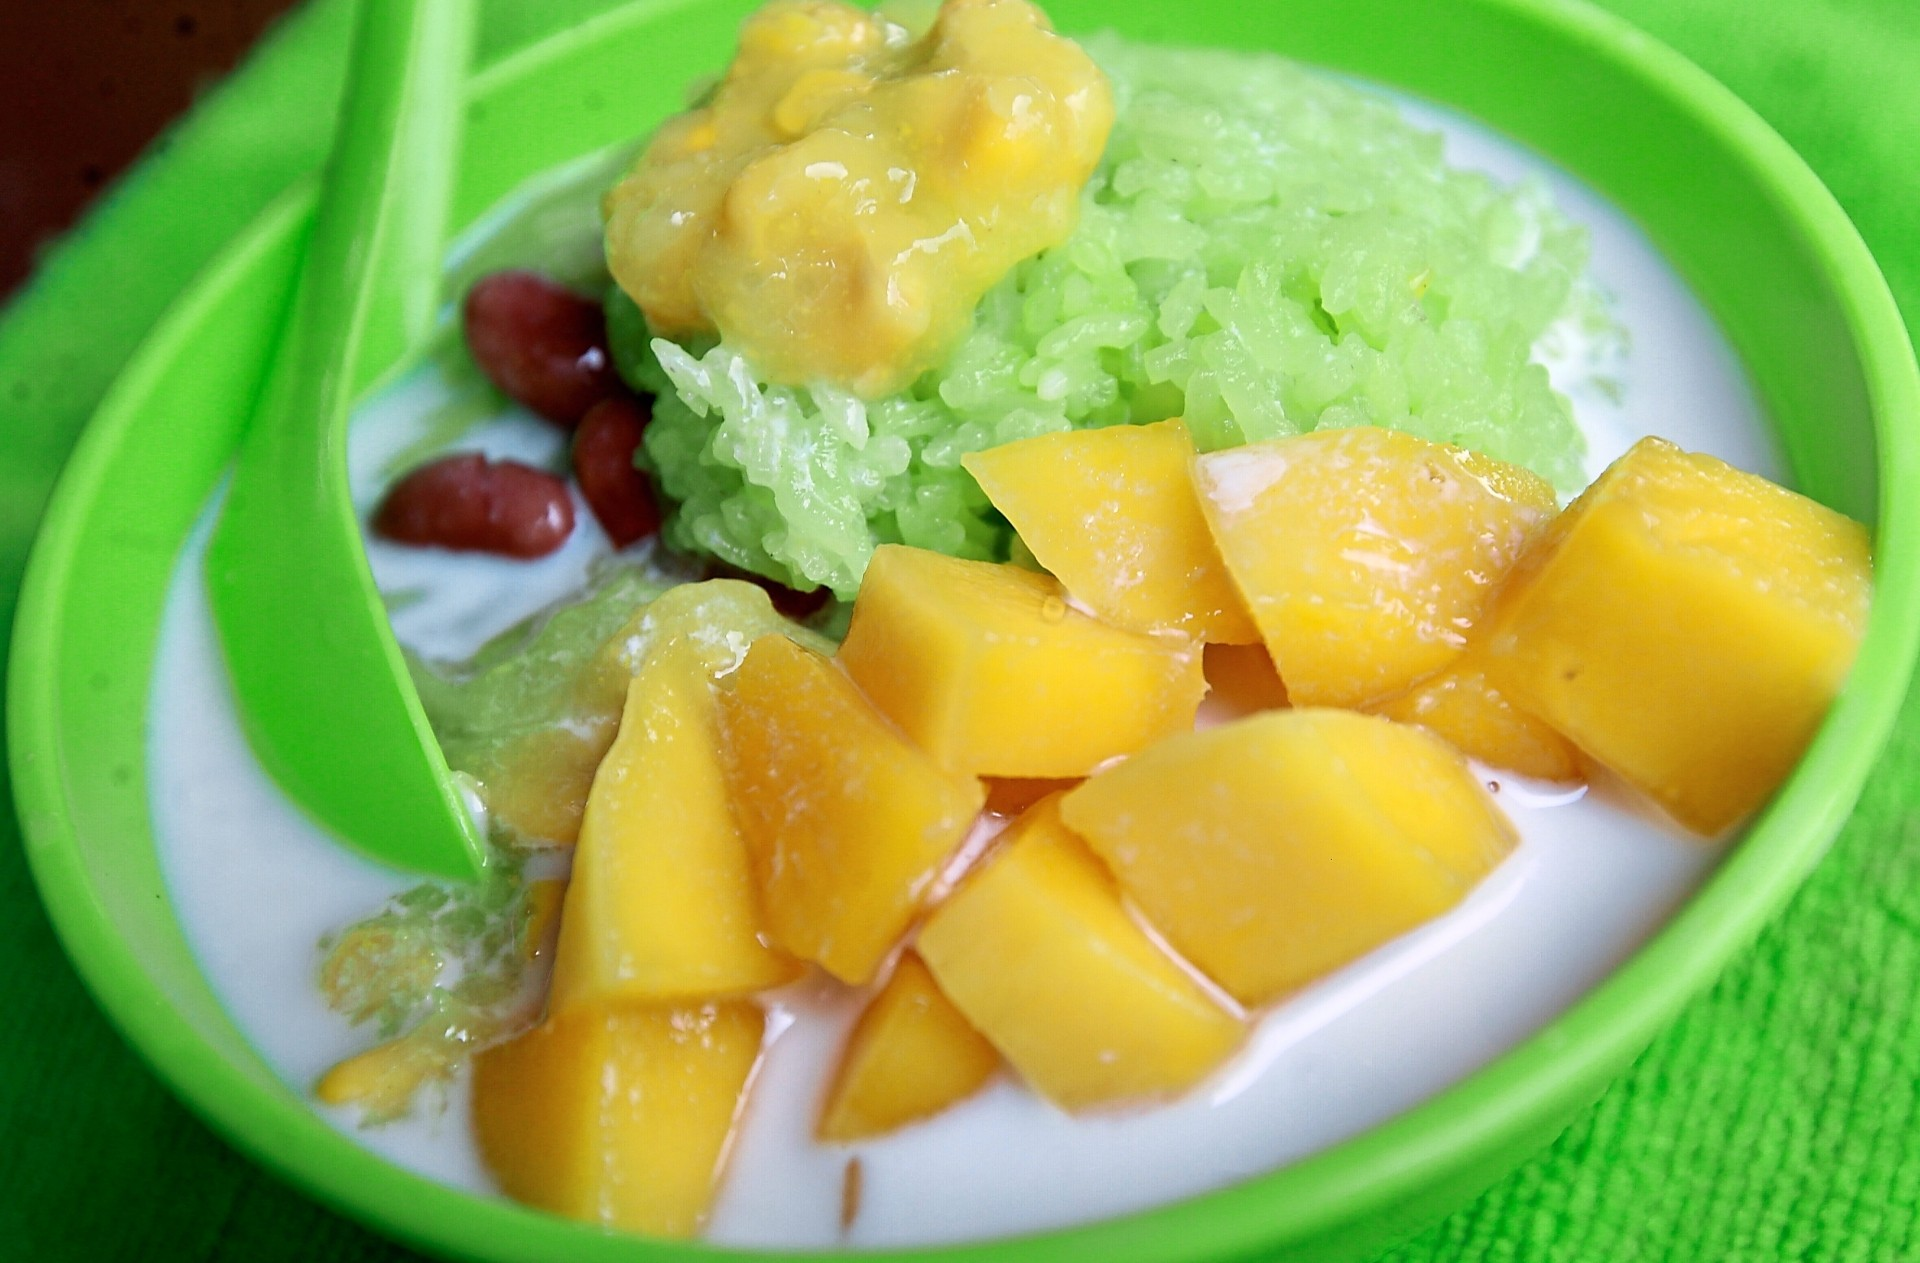 Cendol mangga with fresh cubed mango pieces at the Wangsa Maju stall.